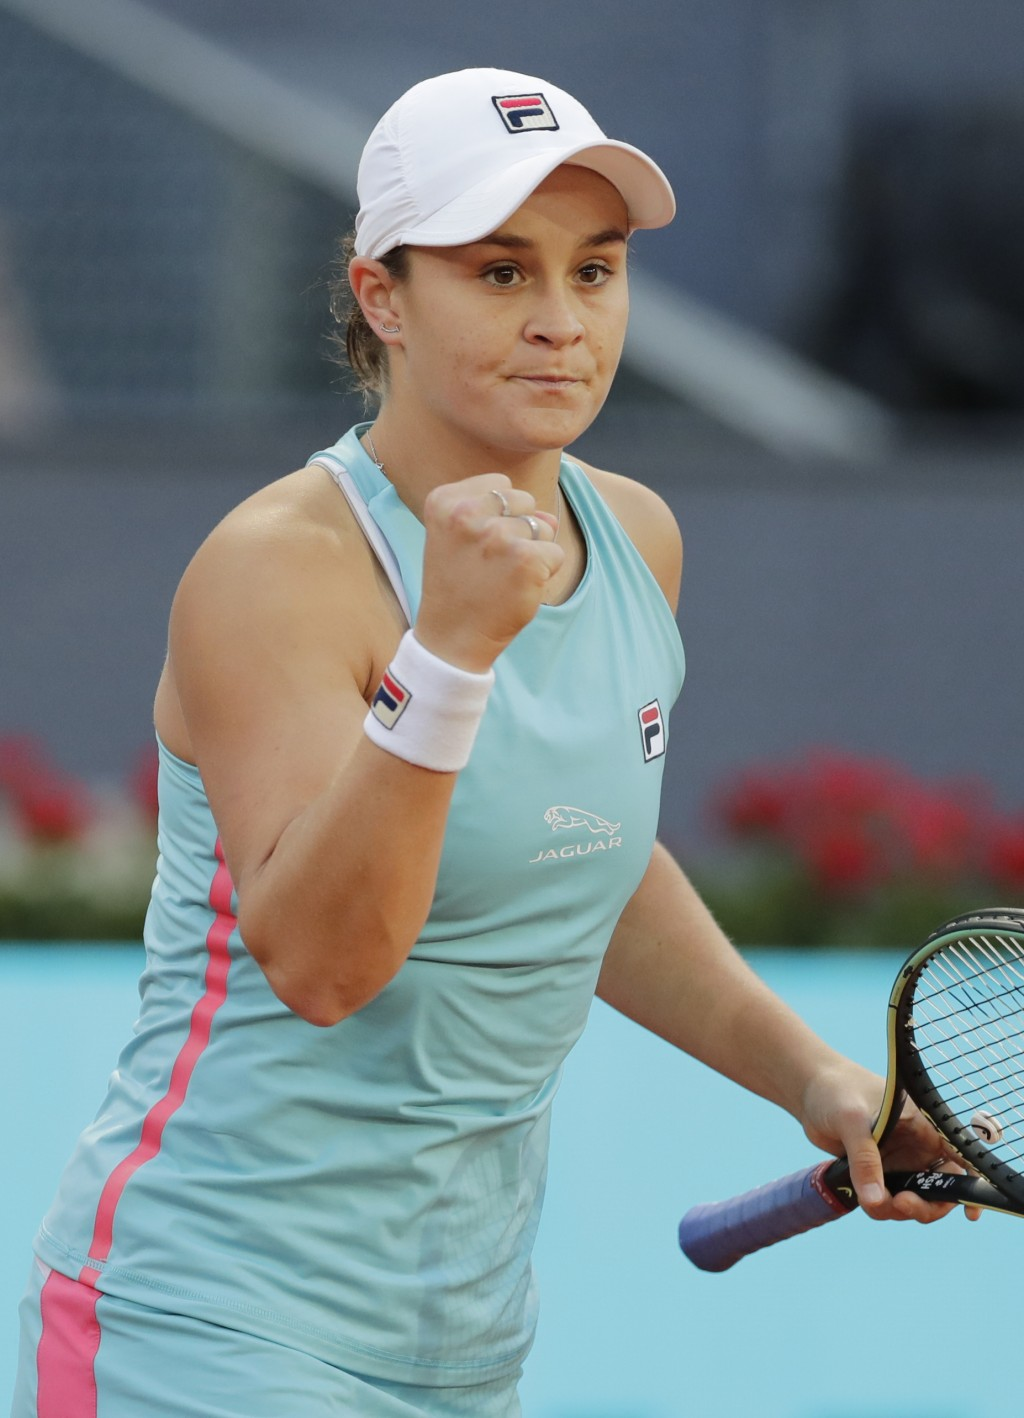 Ashleigh Barty of Australia celebrates after defeating Iga Swiatek of Poland during their match at the Madrid Open tennis tournament in Madrid, Spain,...